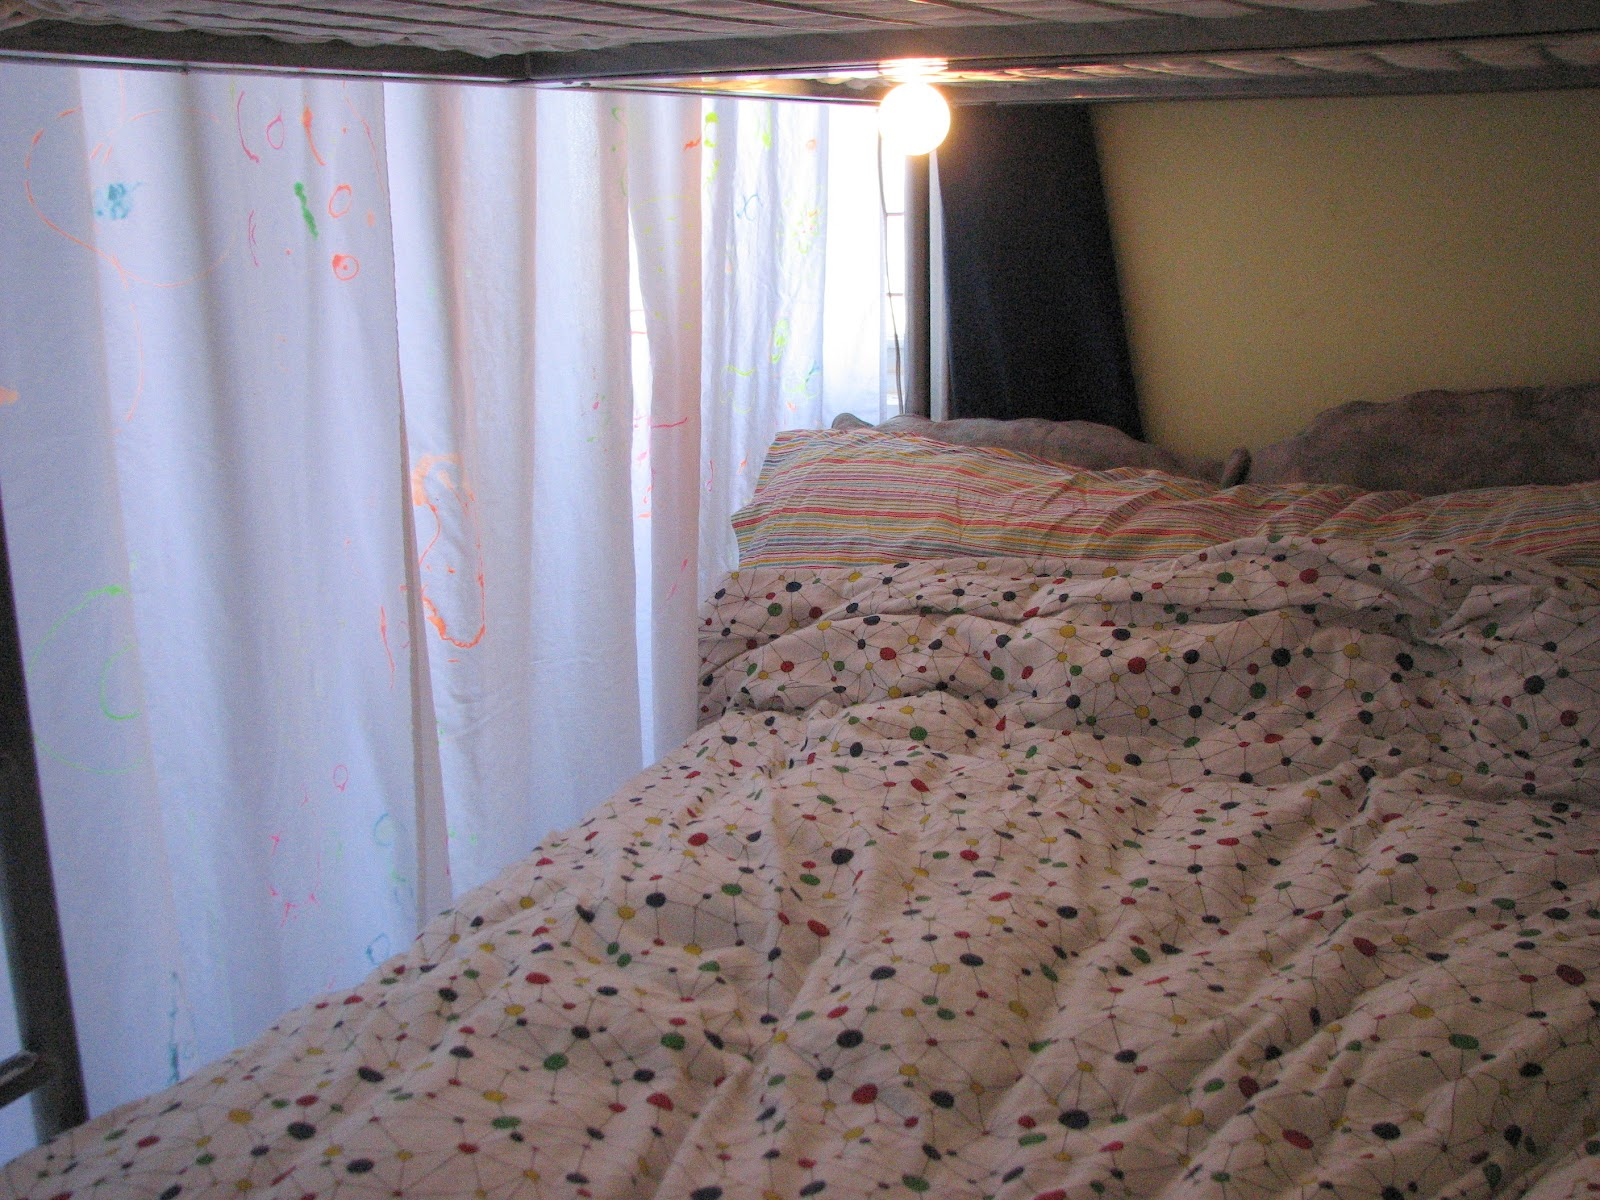 Bunk Bed Curtains | Canopy for Bunk Bed | Tent Bunk Beds